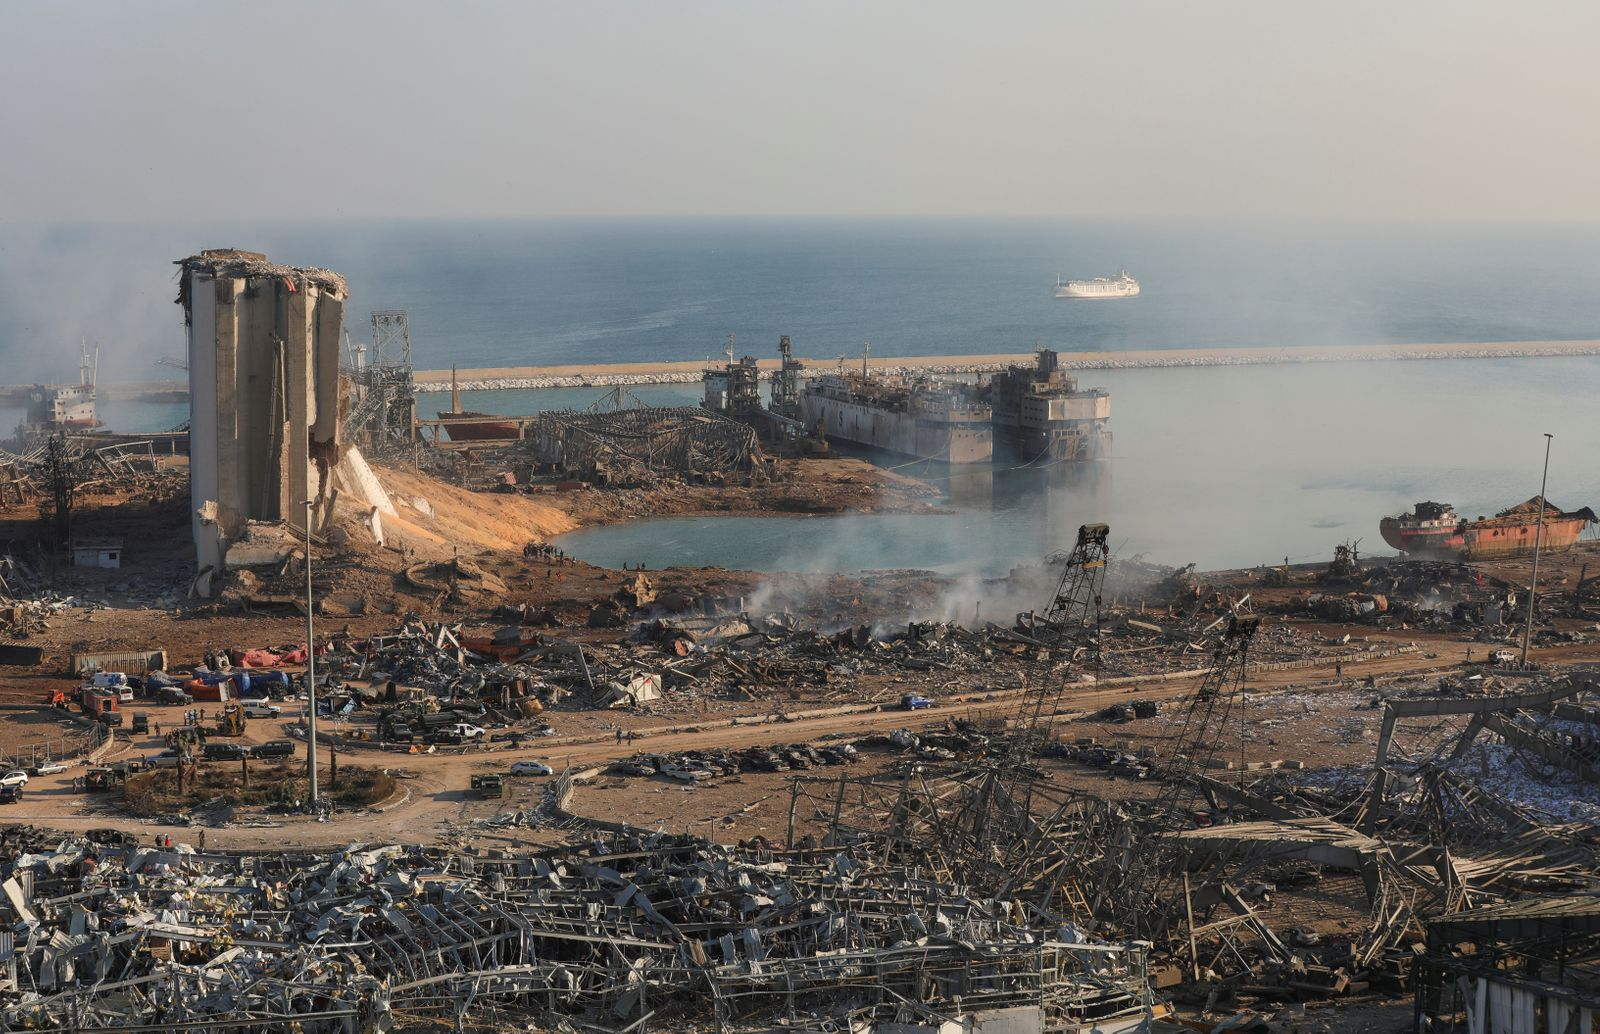 A general view shows the damage at the site of Tuesday's blast in Beirut's port area